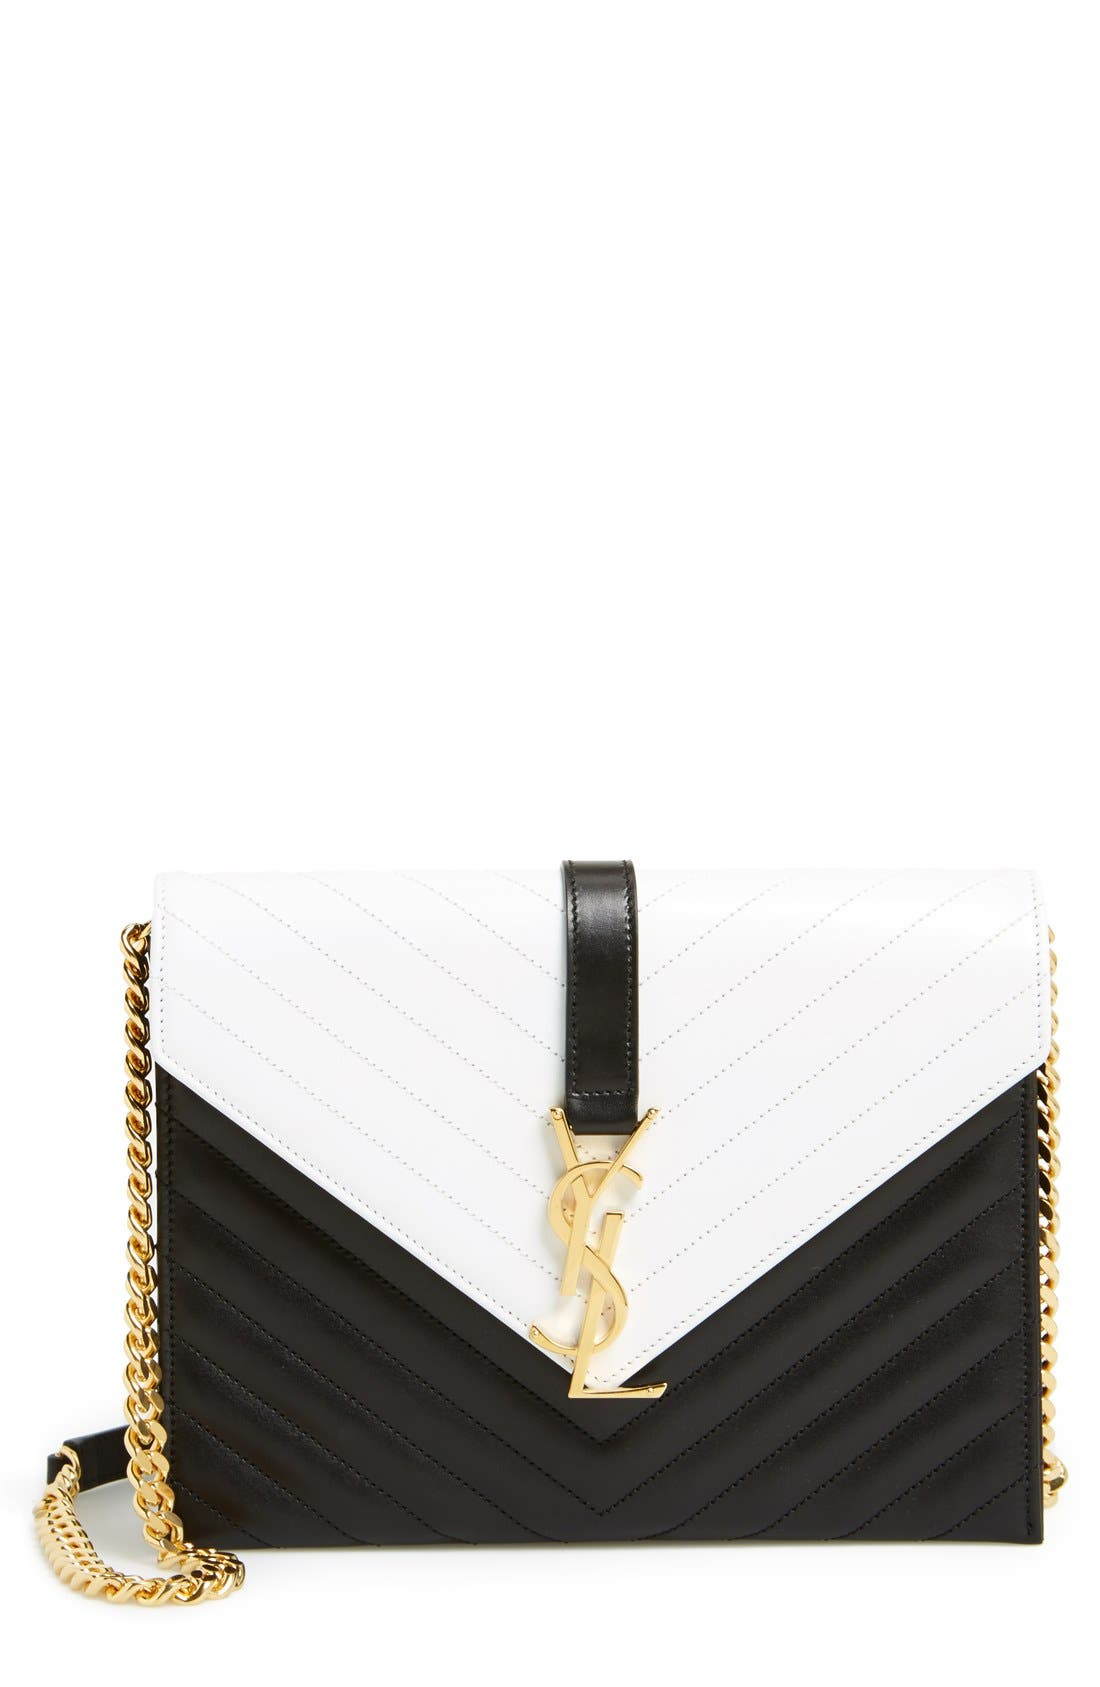 Alternate Image 1 Selected - Saint Laurent 'Cassandre' Shoulder Bag